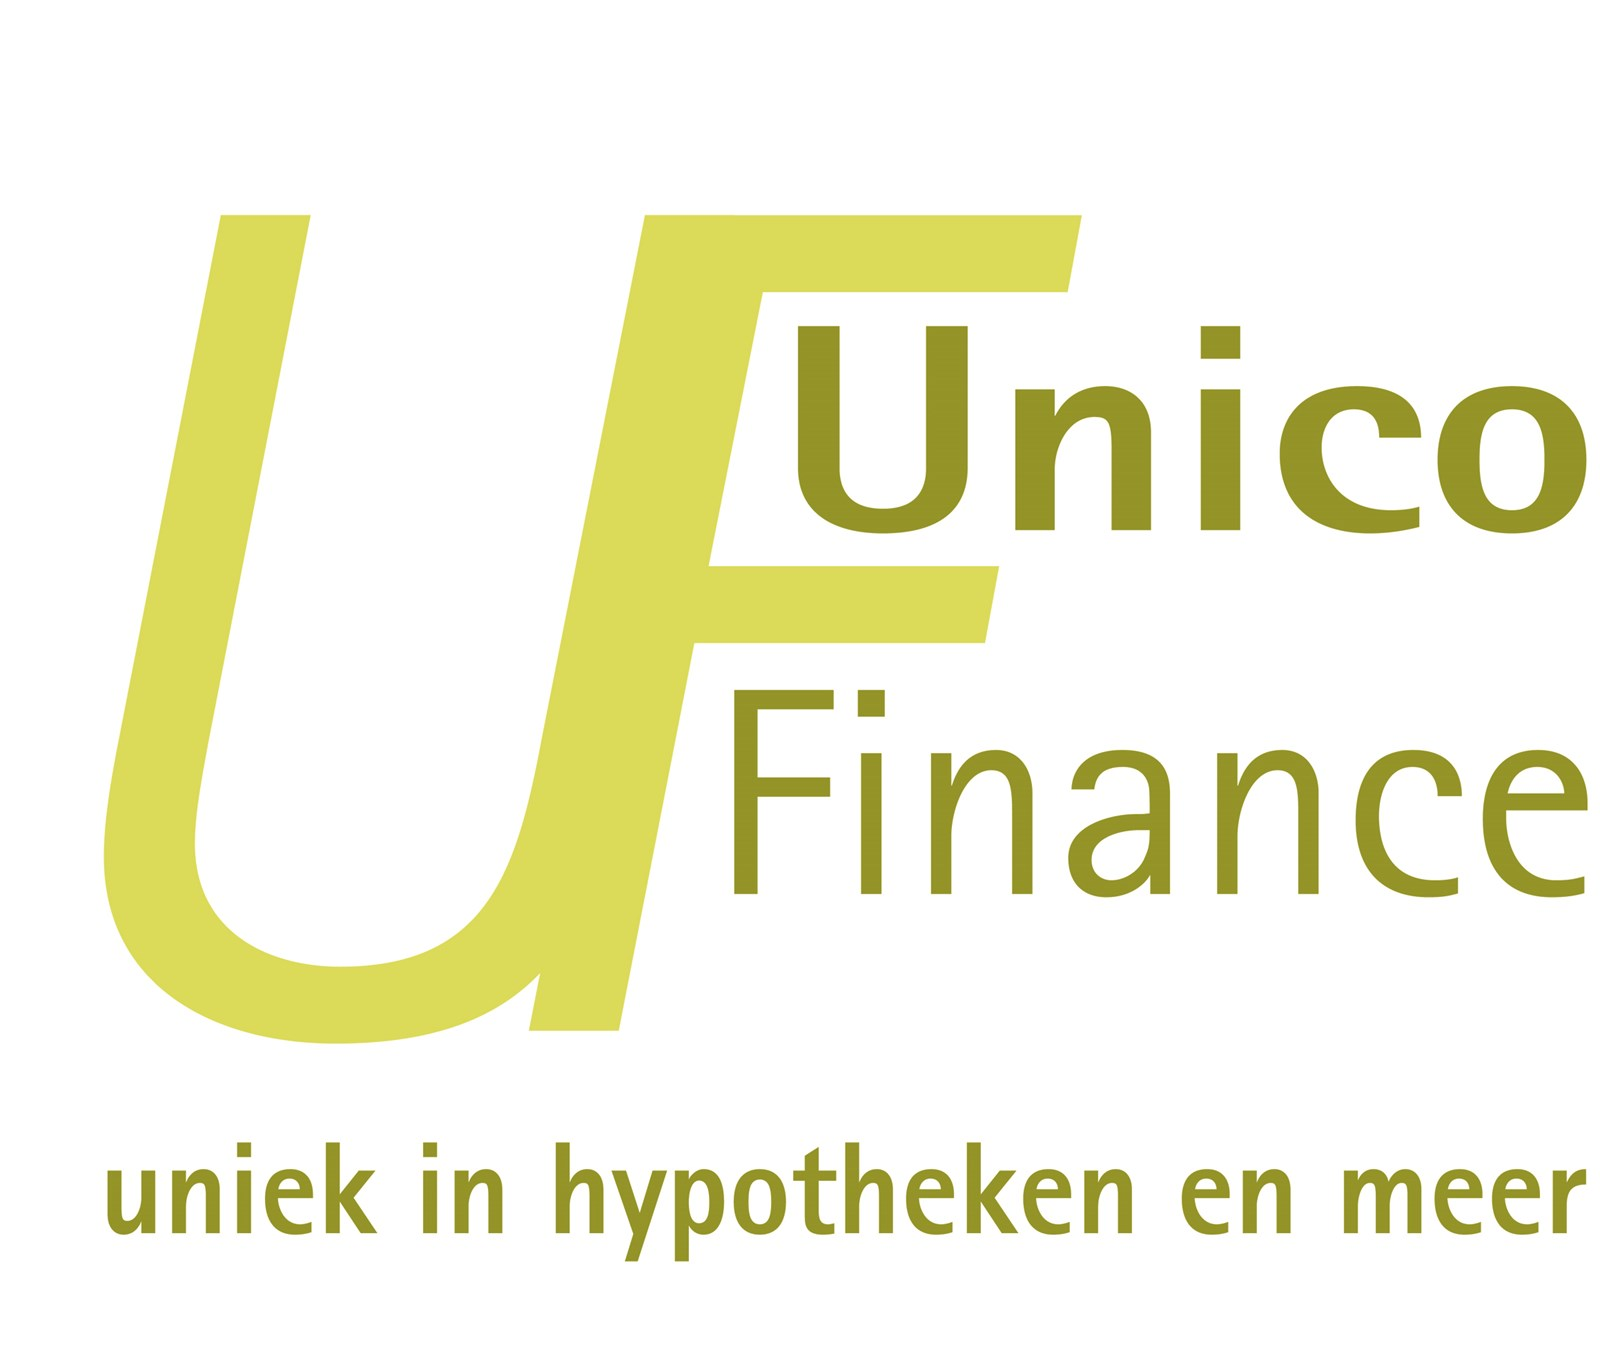 Logo van Unico Finance